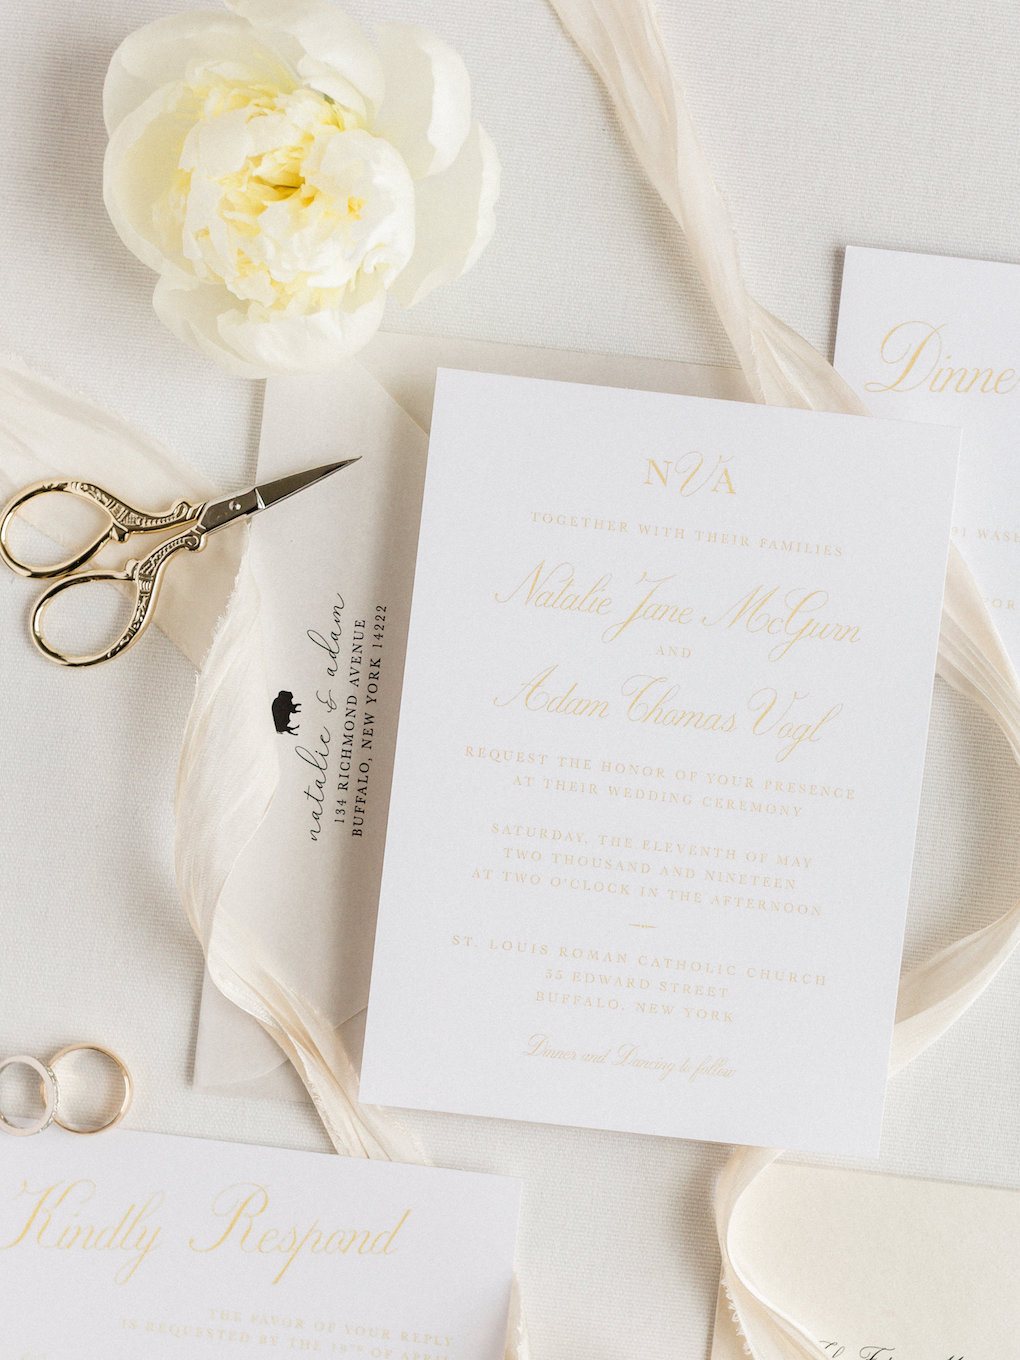 Wedding invitation and stationery for chic wedding in Buffalo, NY planned by Exhale Events. Find more timeless wedding inspiration at exhale-events.com!